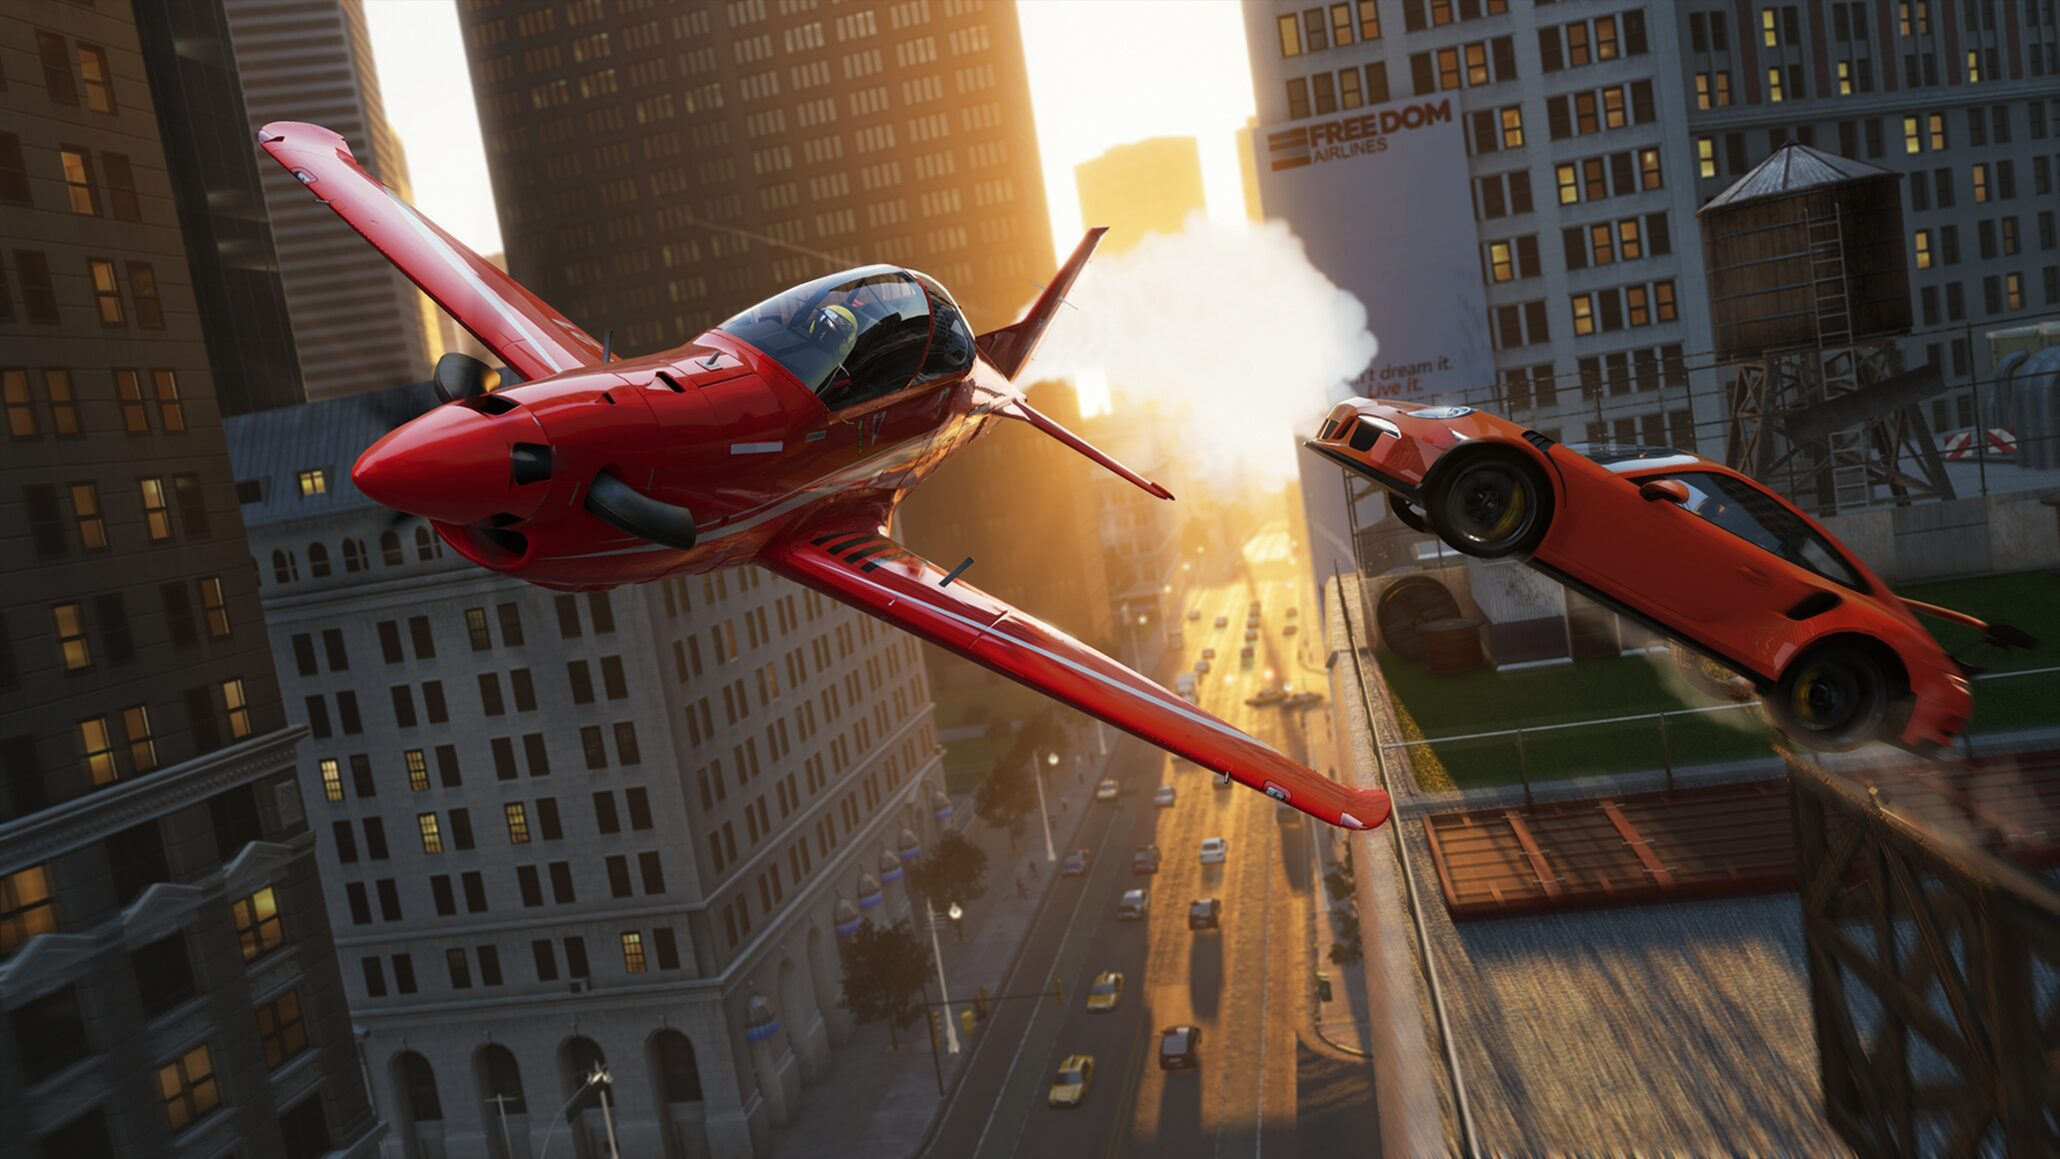 THE CREW 2 Developer Q&A - Ubisoft Spills The Beans on All The Changes